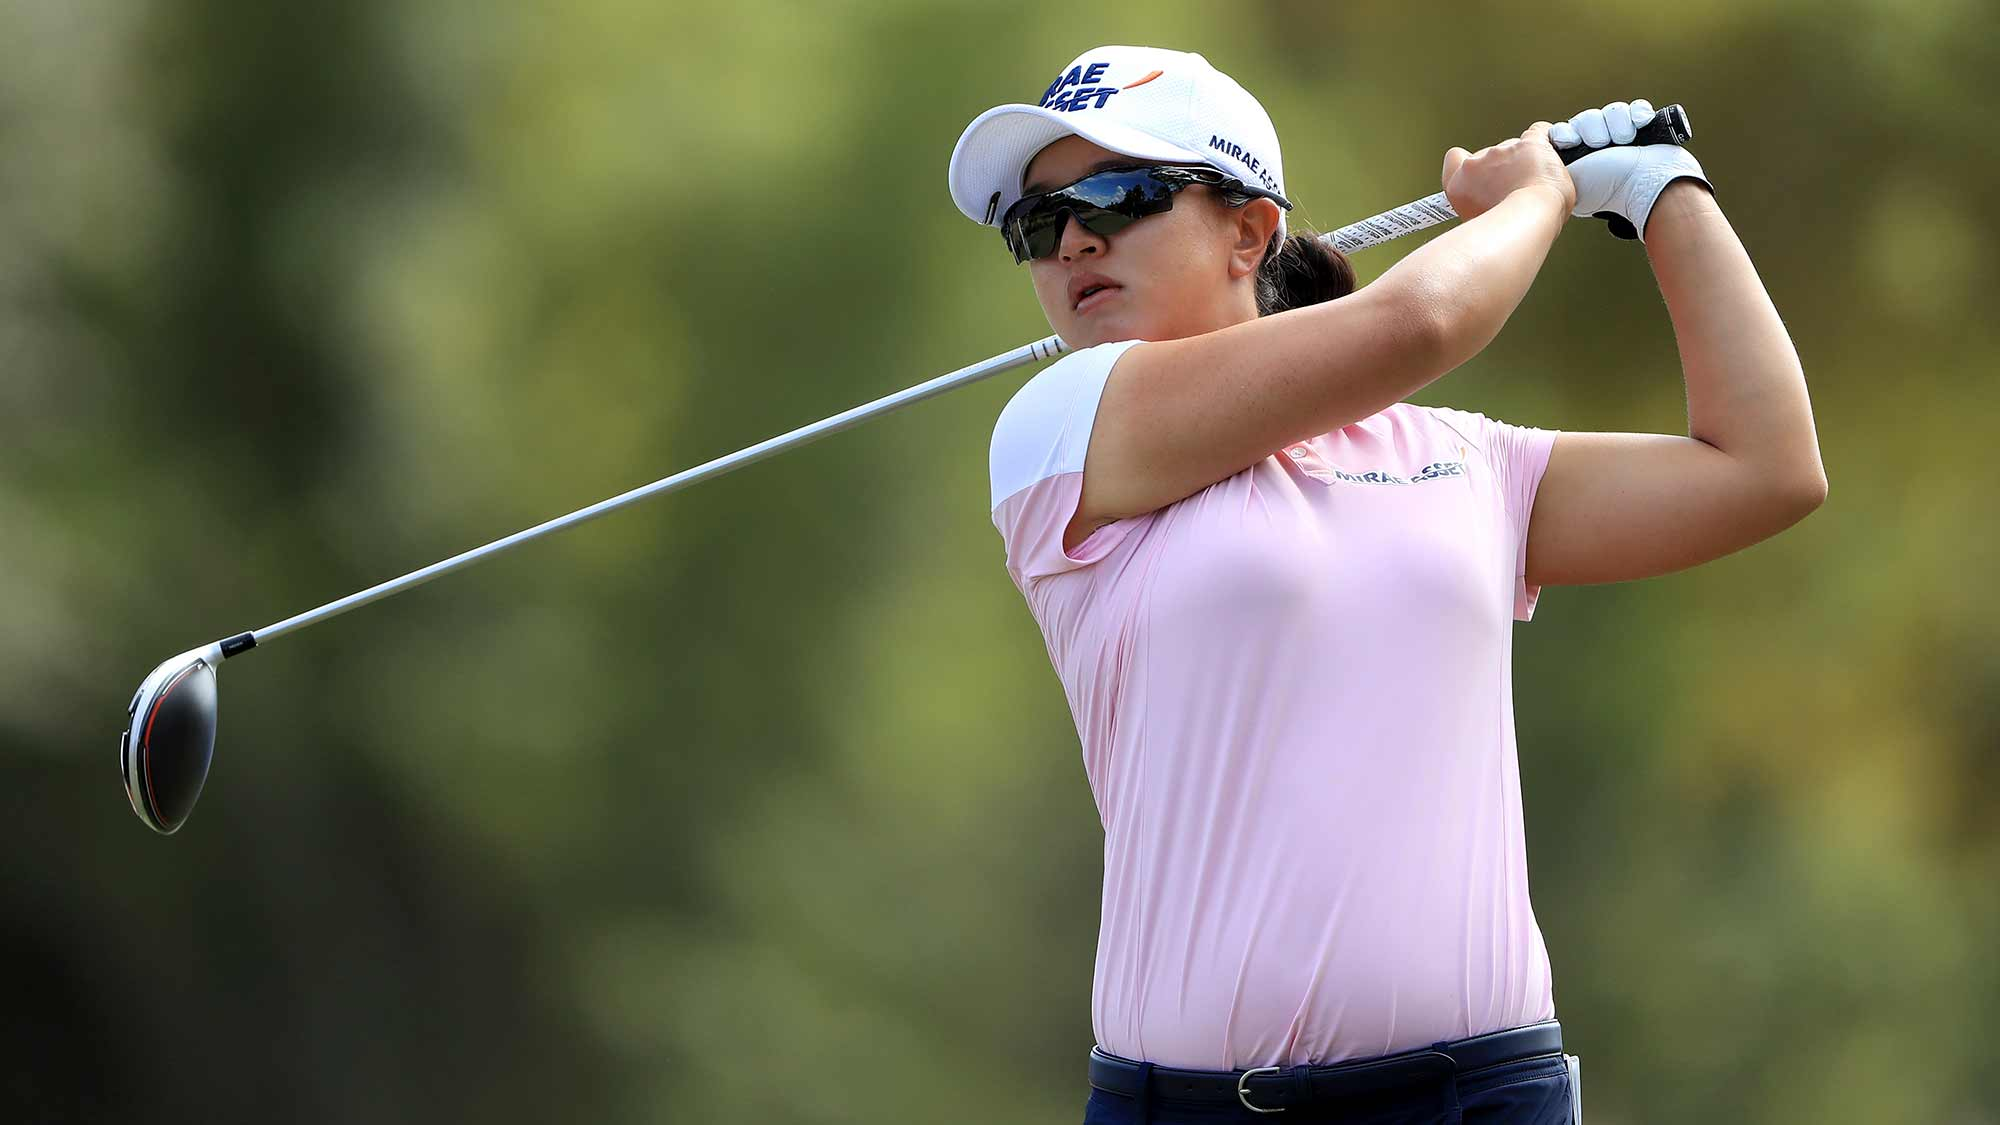 Sei Young Kim of South Korea plays a shot on the third hole during the third round of the CME Group Tour Championship at Tiburon Golf Club on November 23, 2019 in Naples, Florida